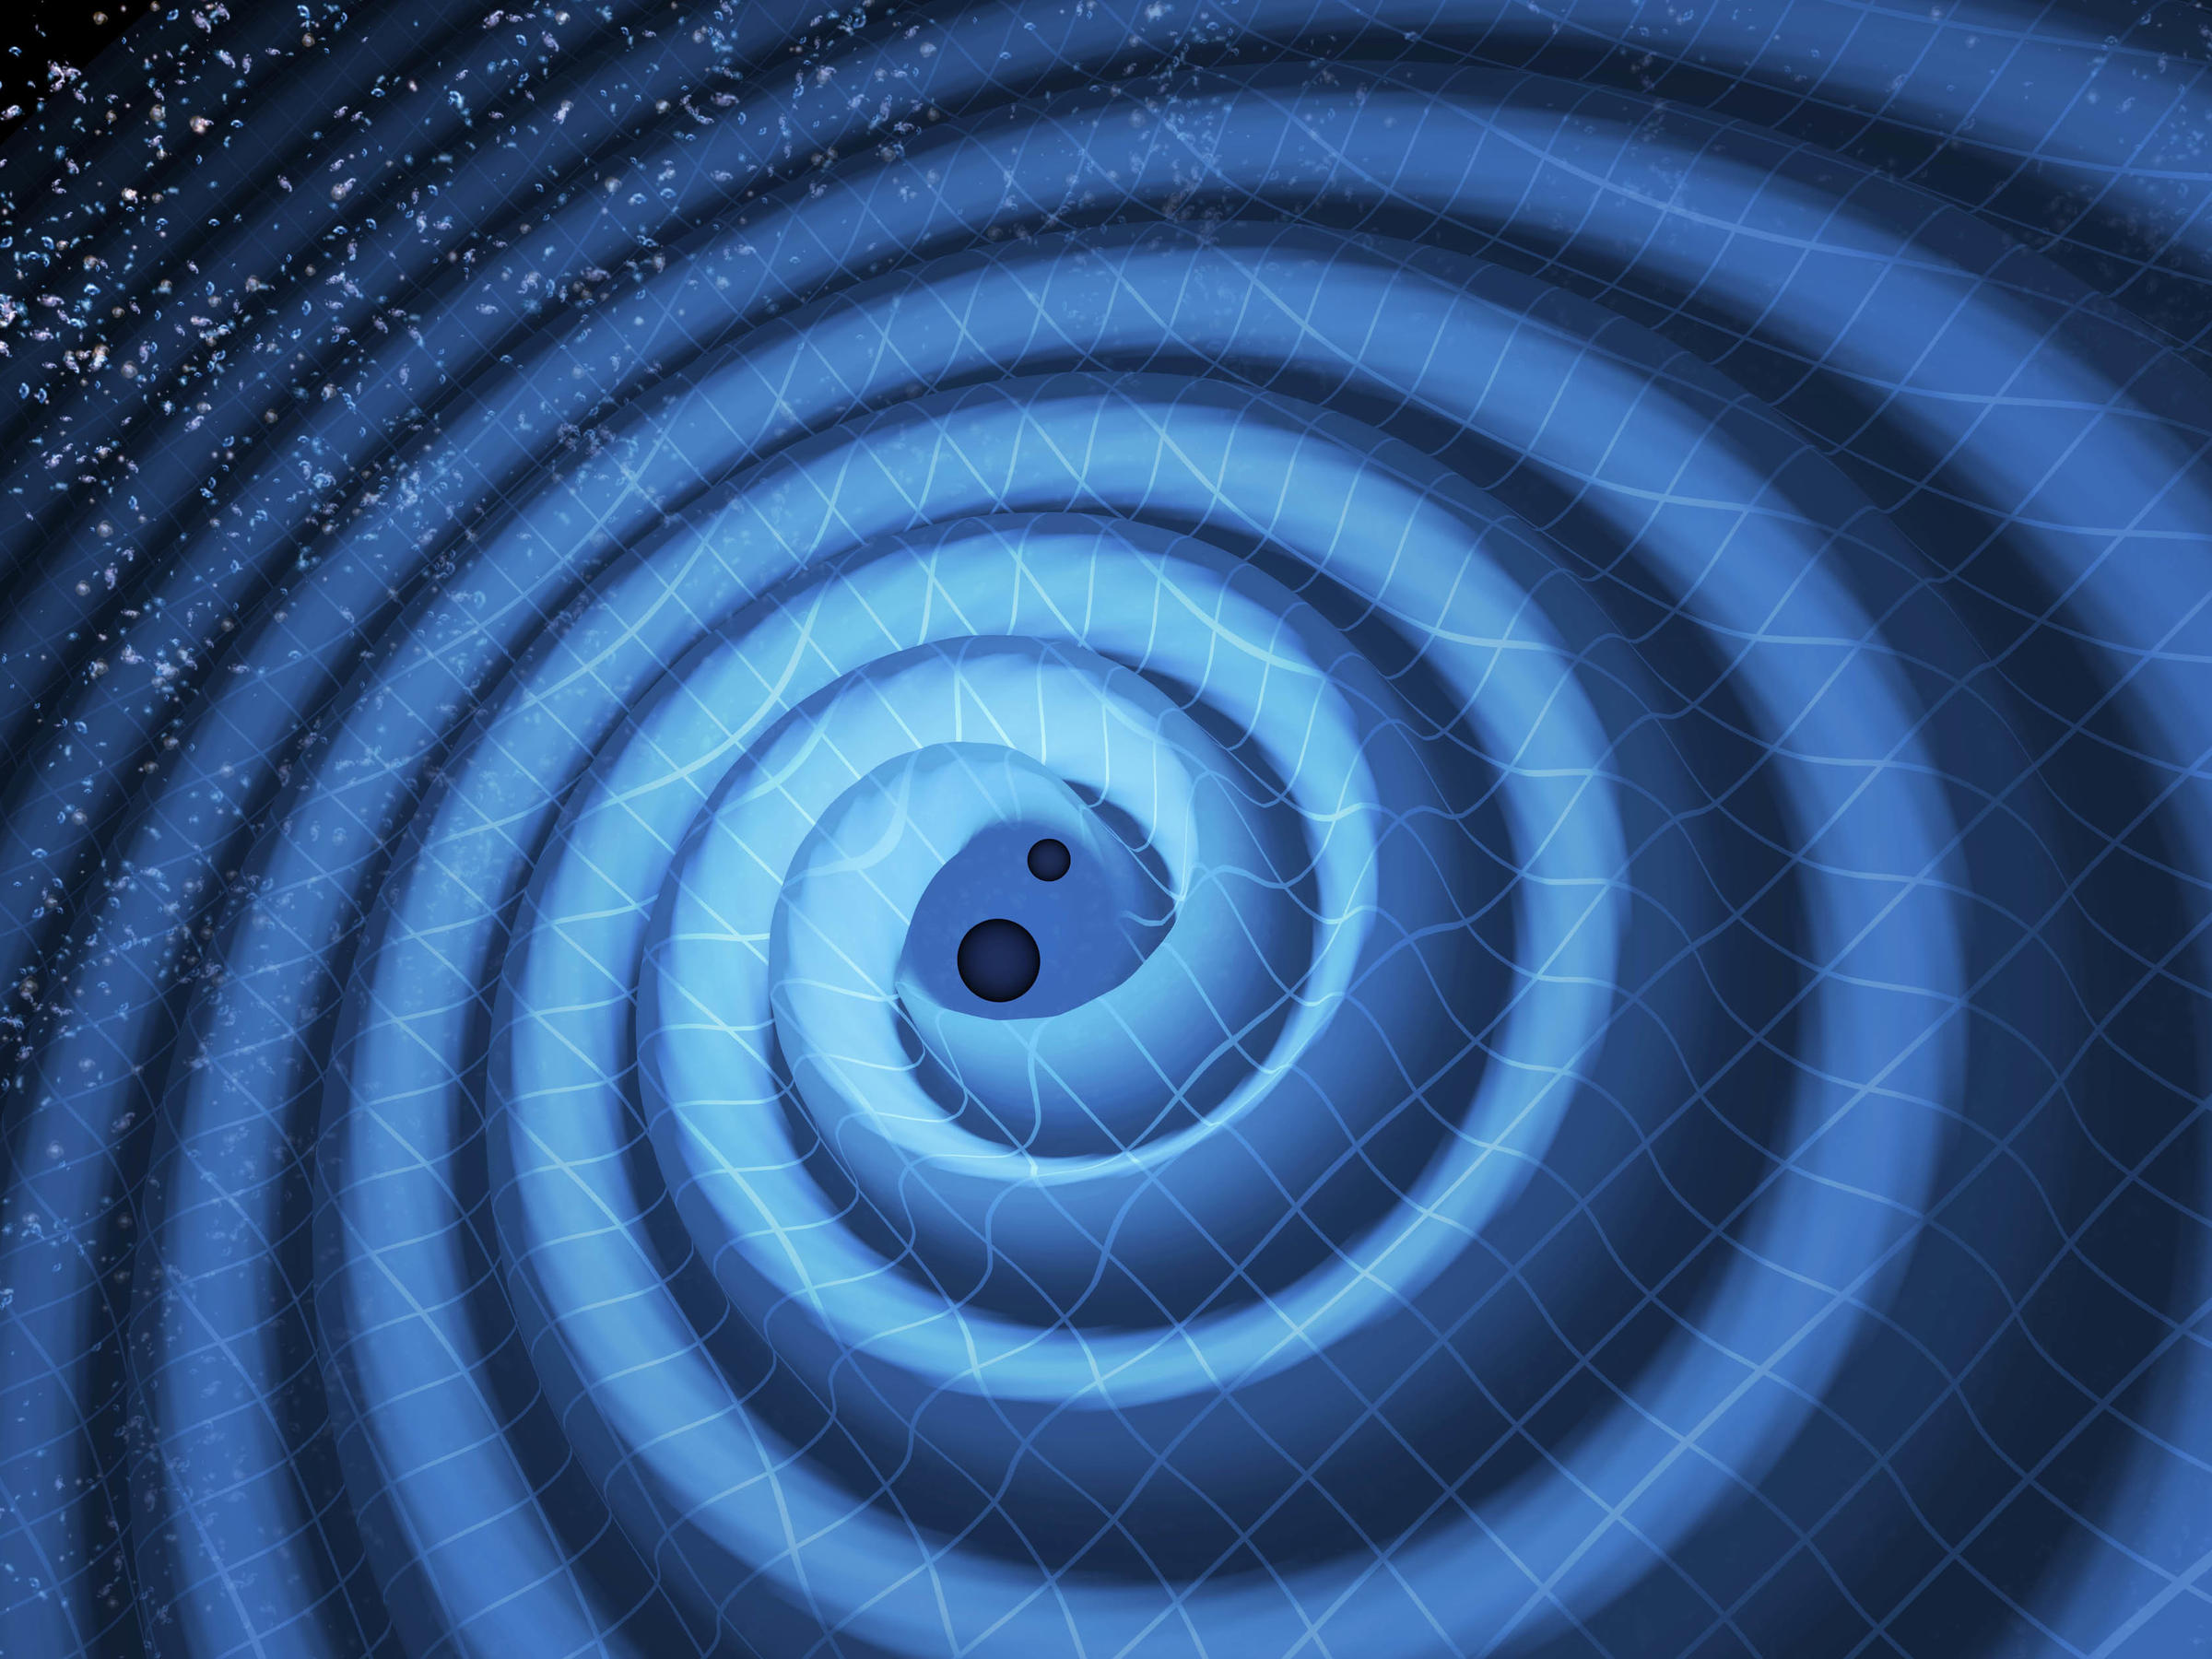 Gravitational Waves From Colliding Black Holes Shake ...